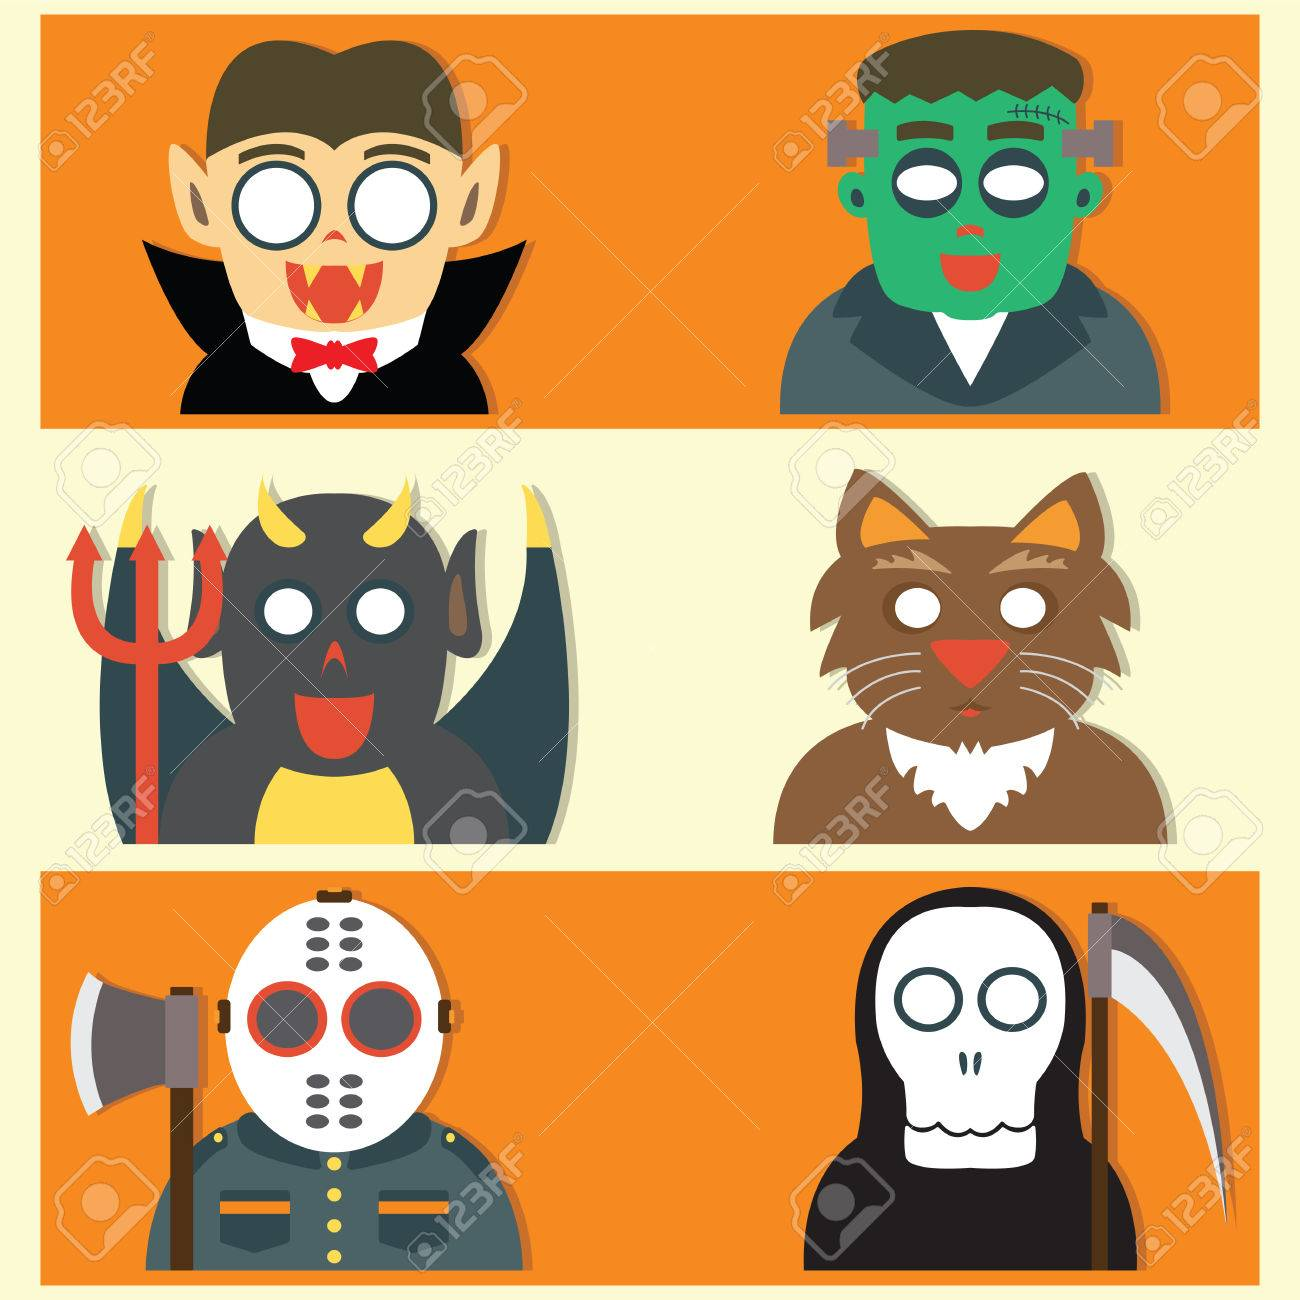 Cute Halloween Monsters Flat Cartoon Design Royalty Free Cliparts ...